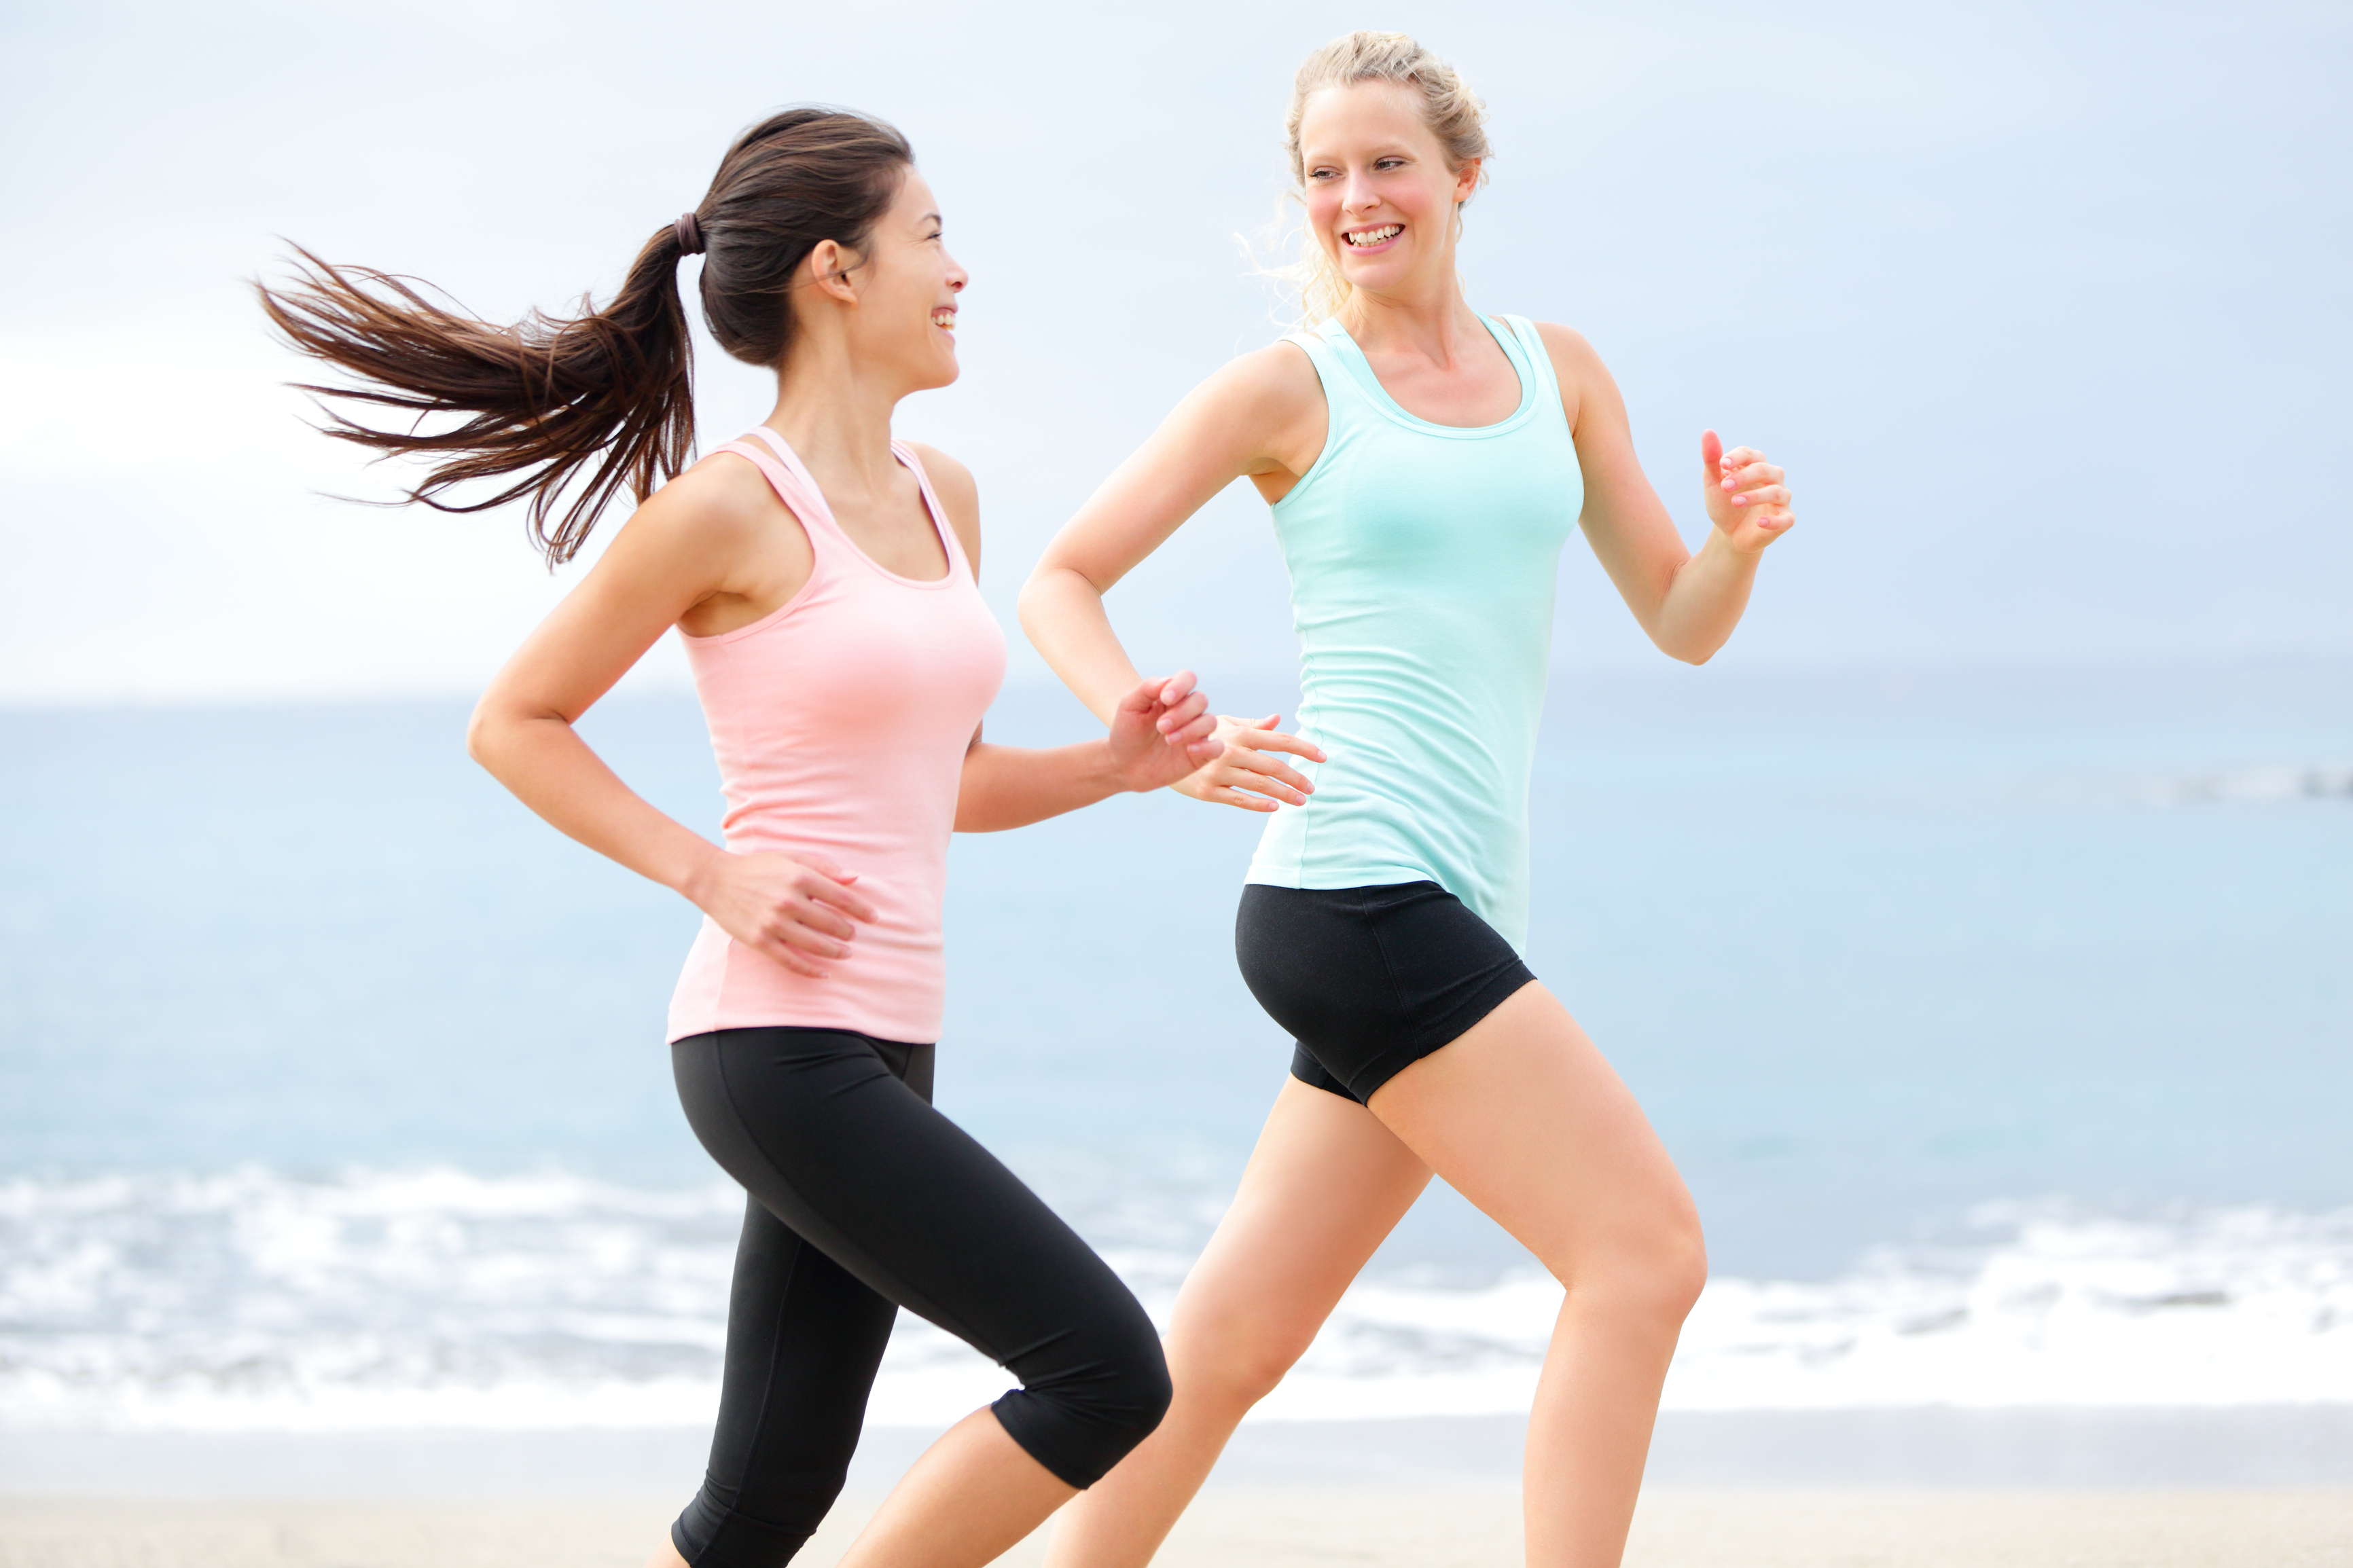 Can You Have HealthyWeight Loss without Diet